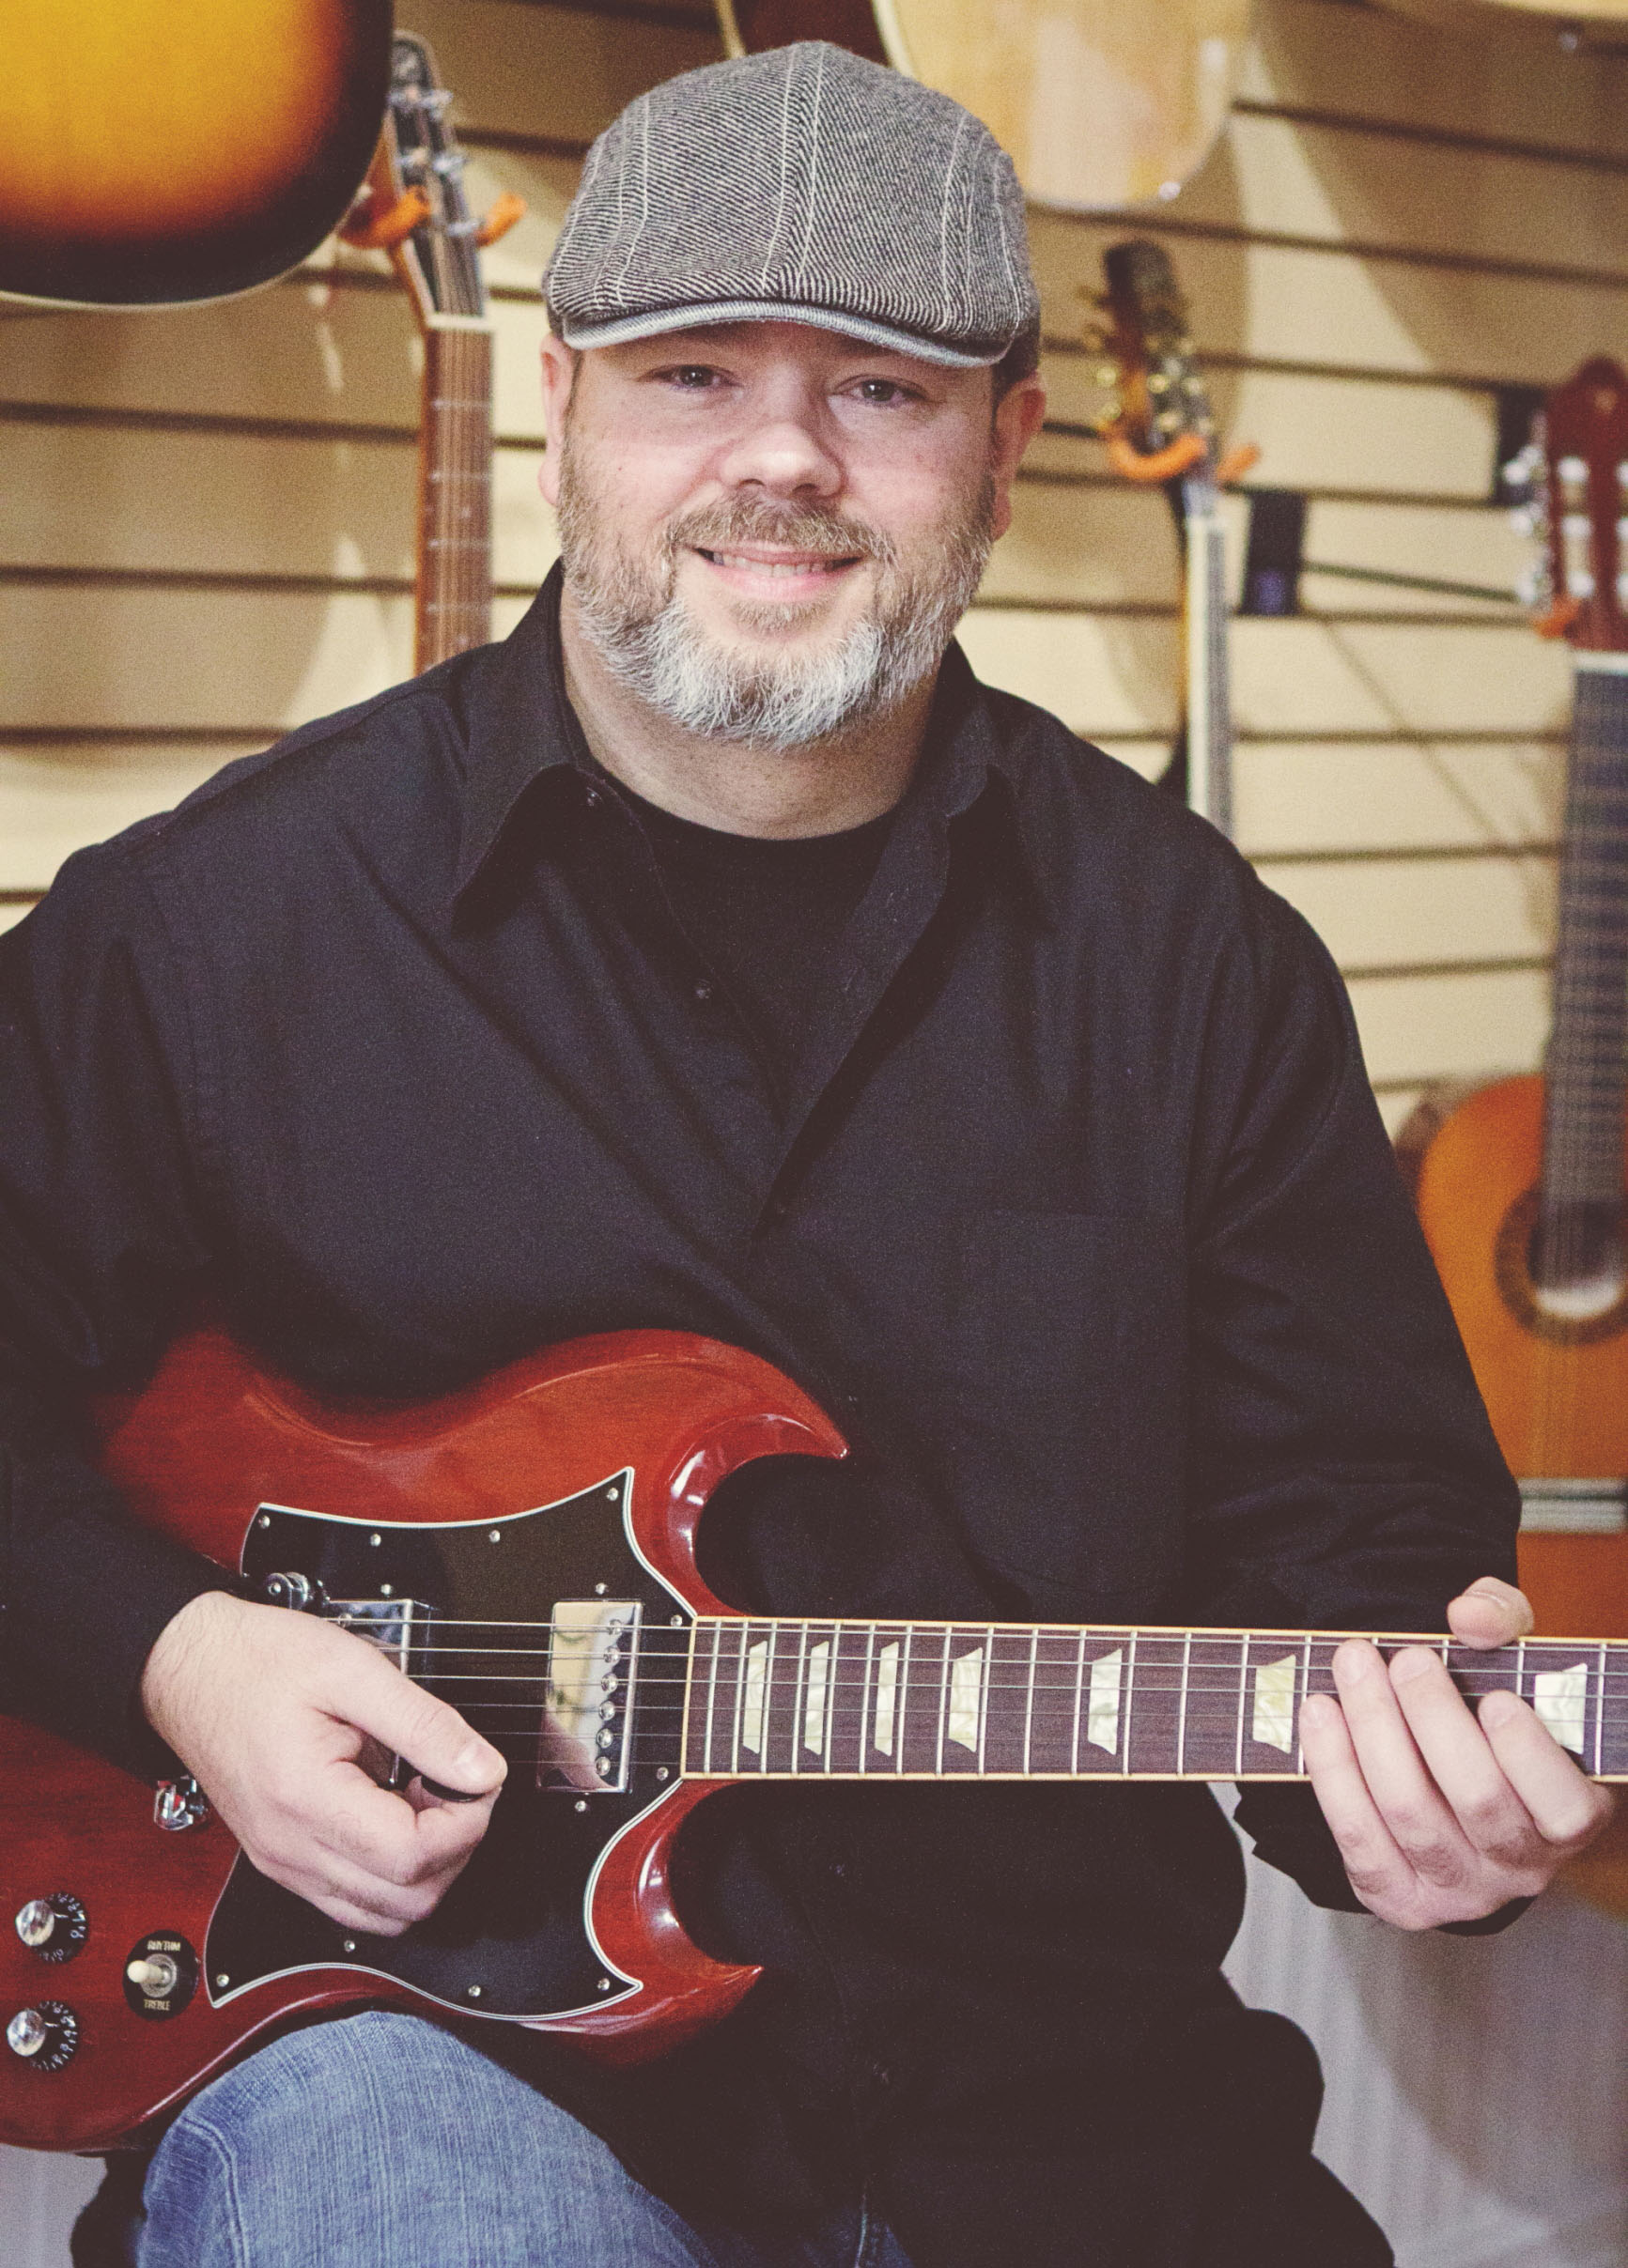 Mason S. Macleod   Guitar, Vocals, Songwriting, Percussion  Mason has been teaching and playing music professionally for three decades, from rock and metal to blues, reggae, top 40, and folk. He studied the Berkeley Jazz theory method with former Hollywood studio musician Bill Schnare, and has played with Juno winners and nominees, backing up and trading solos with maestros such as Morgan Davis and Matt Anderson.